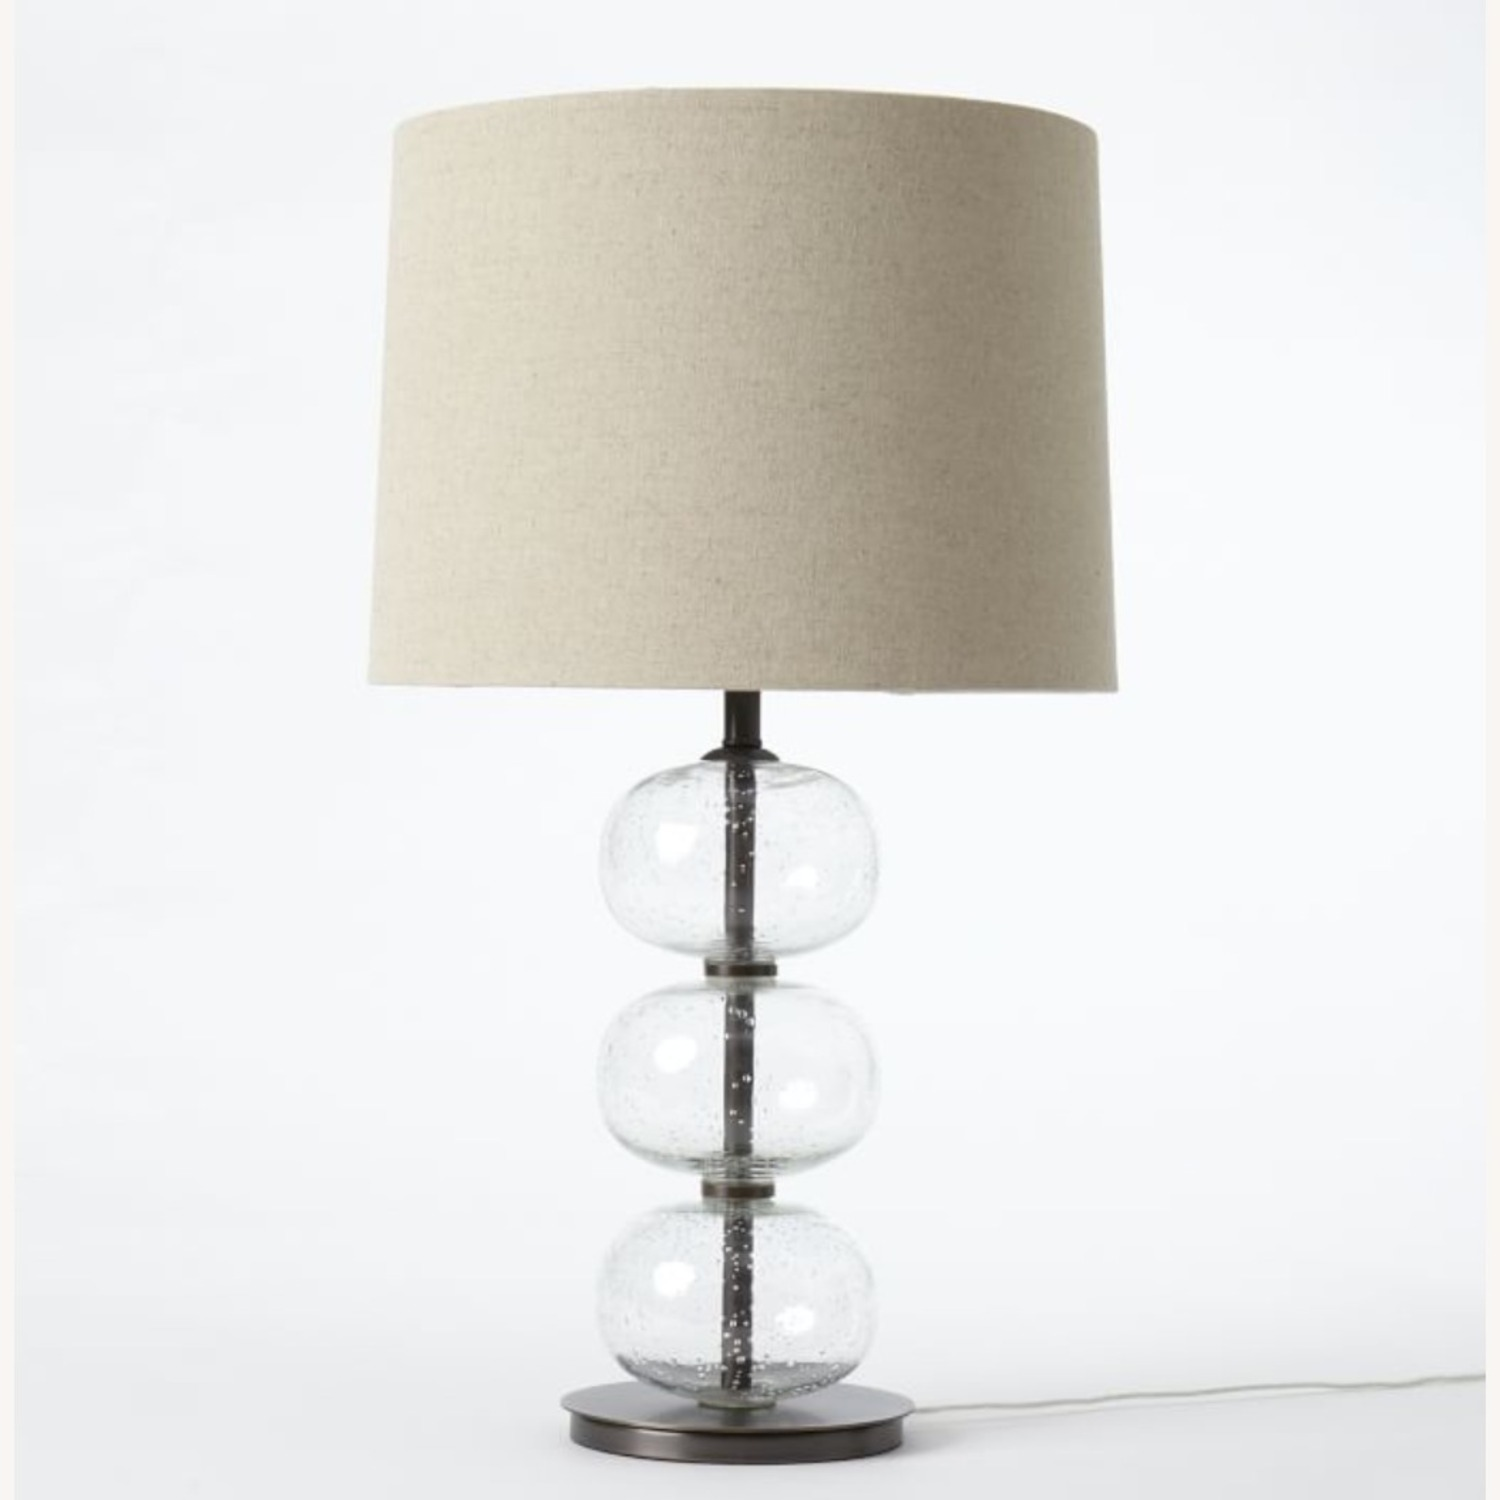 West Elm Abacus Glass Table Lamp - image-1